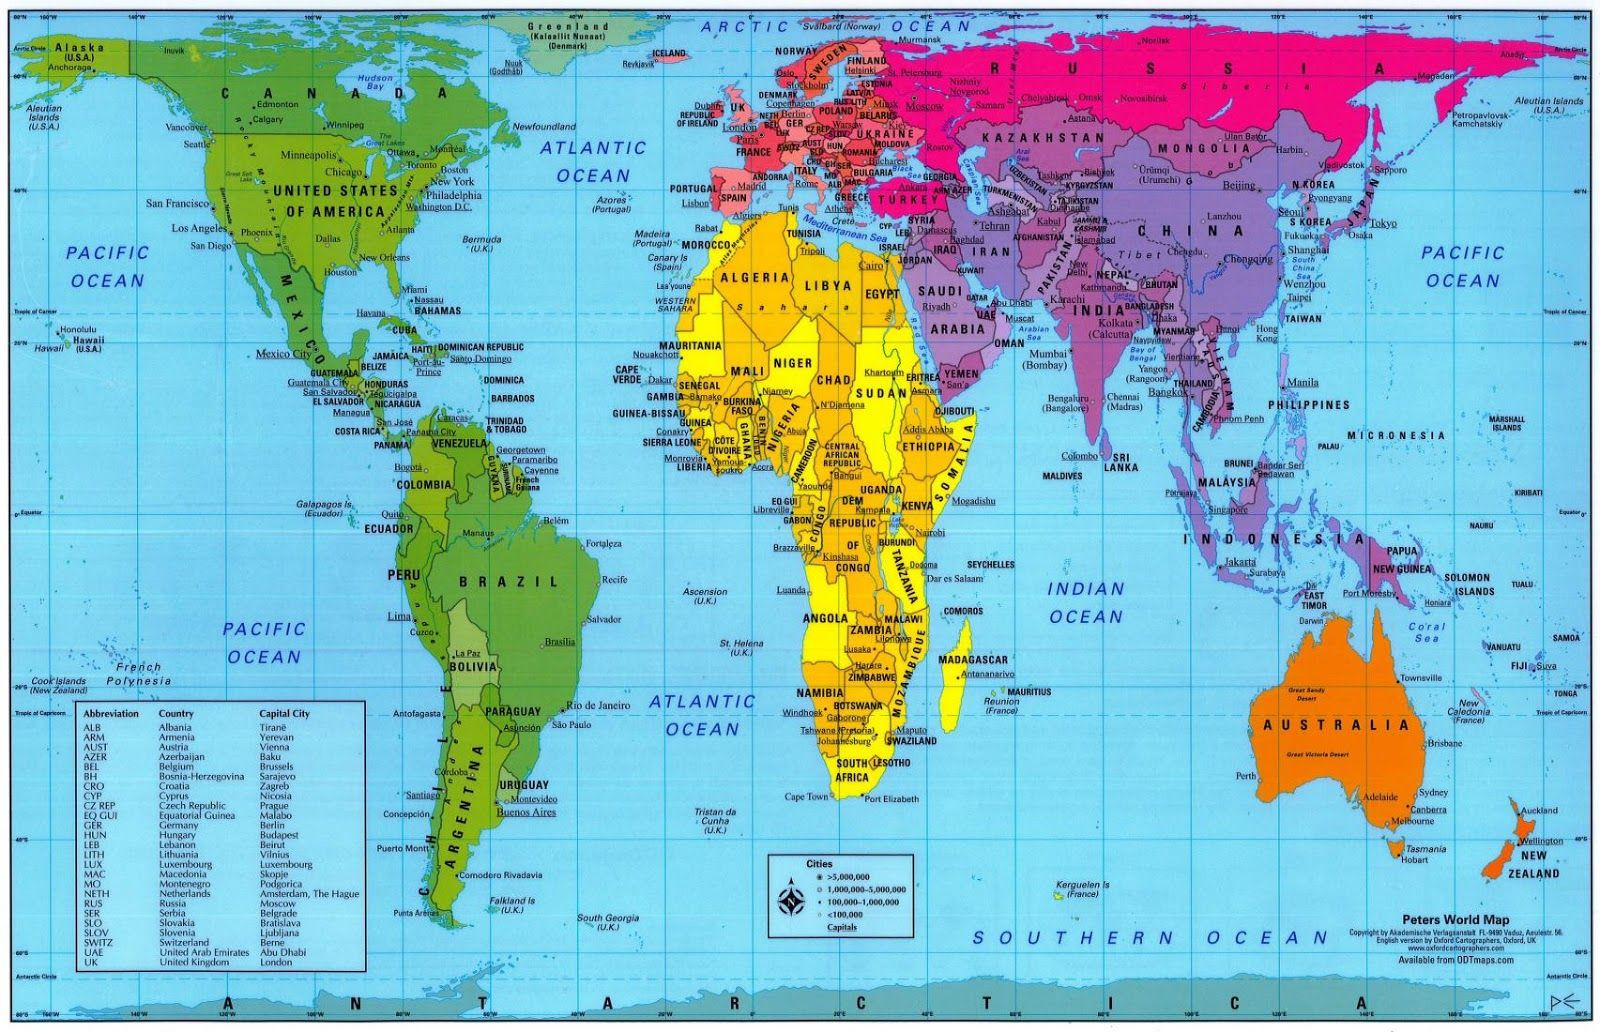 Printable Map Of the World Luxury Cont From the Peter S Projection Map Depicting Relative Sizes